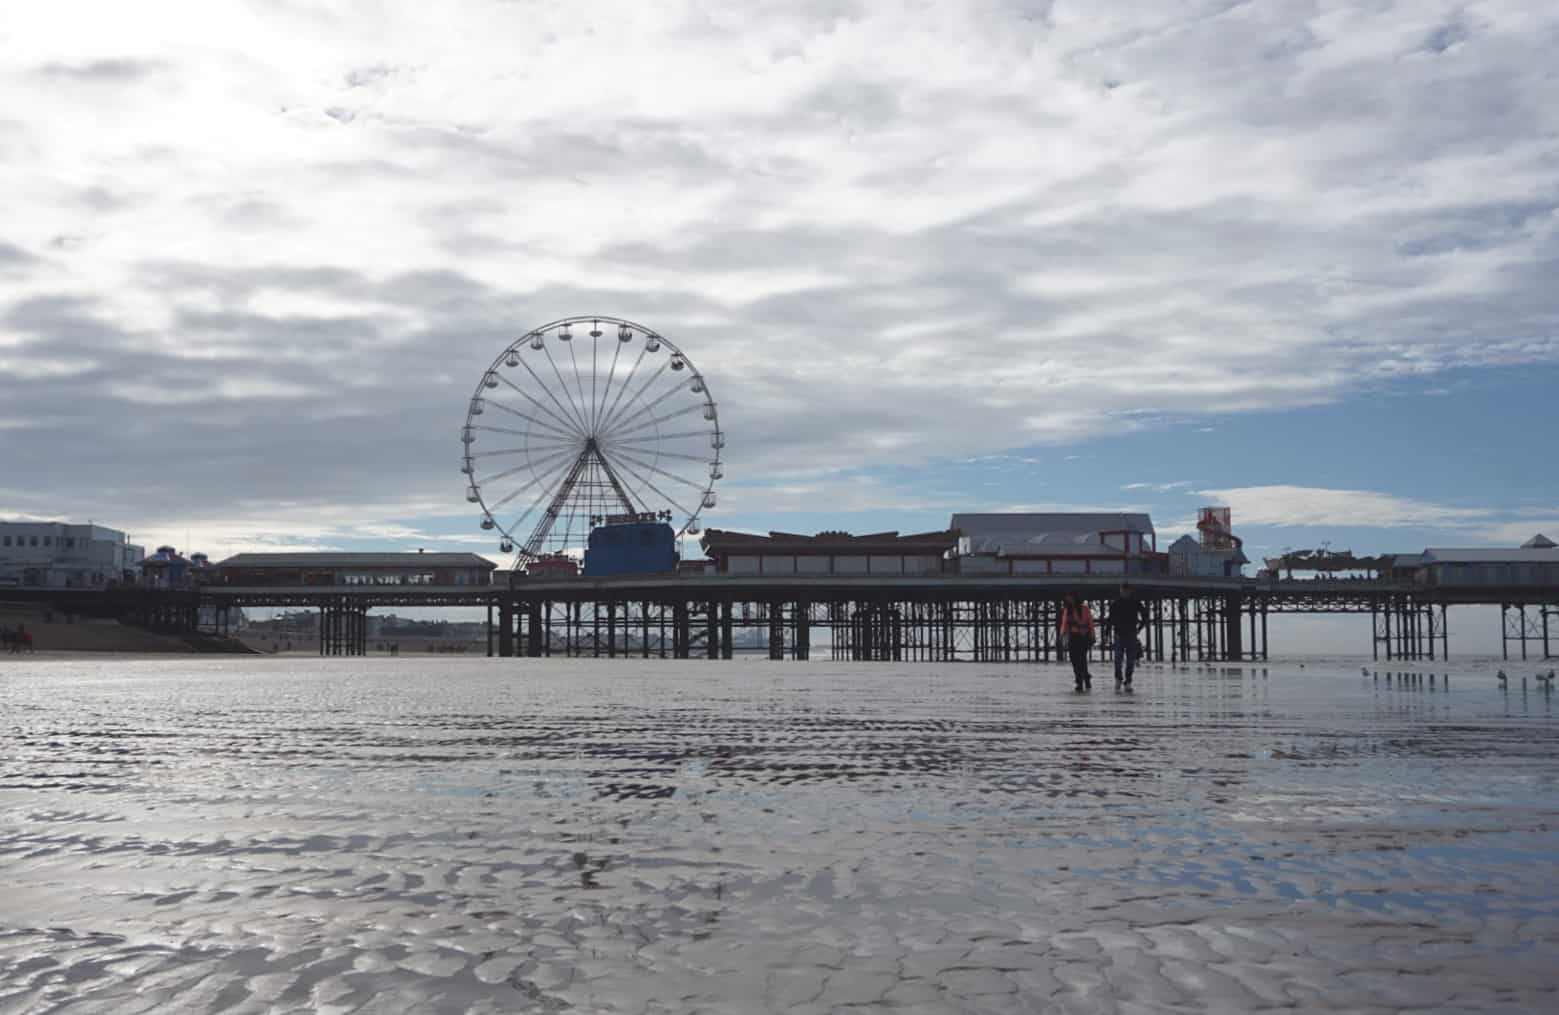 A view on the beach in Blackpool